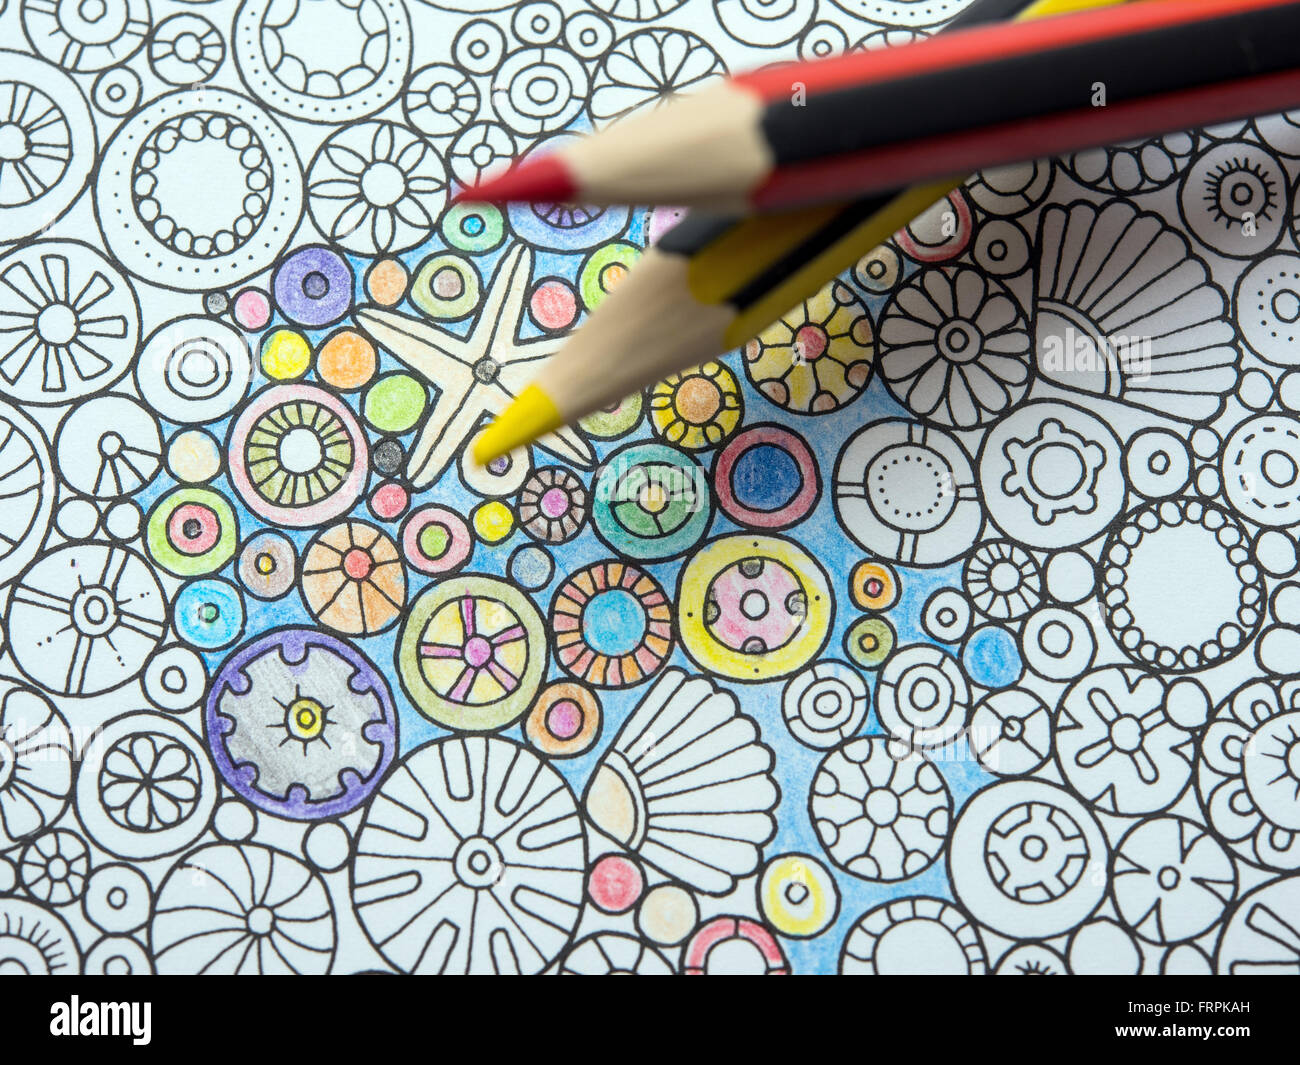 A Page In The Adult Coloring Book My Phantastic Ocean From Johanna Basford Photographed Sieversdorf Brandenburg Germany 16 March 2016 Books